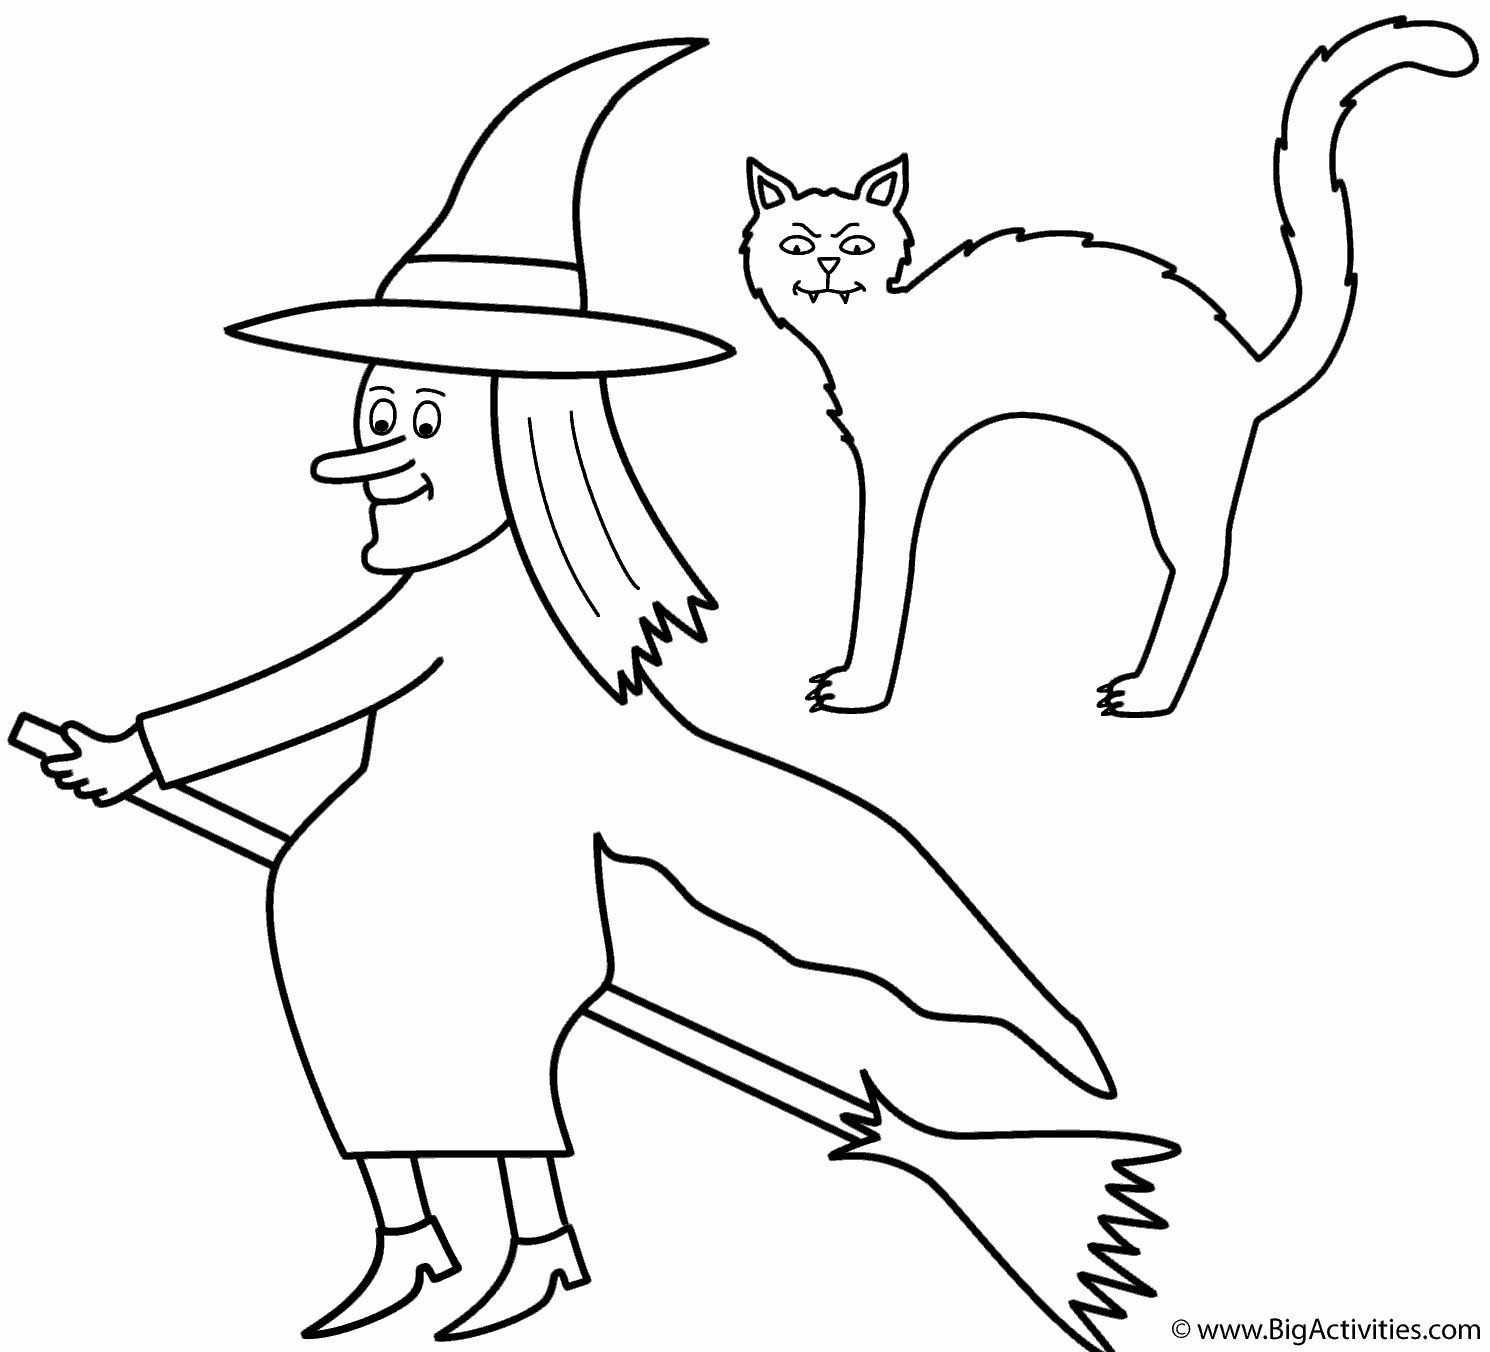 Black Cat Coloring Page Beautiful Witch On Broom With Black Cat Coloring Page Halloween Cat Coloring Page Free Halloween Coloring Pages Coloring Pages